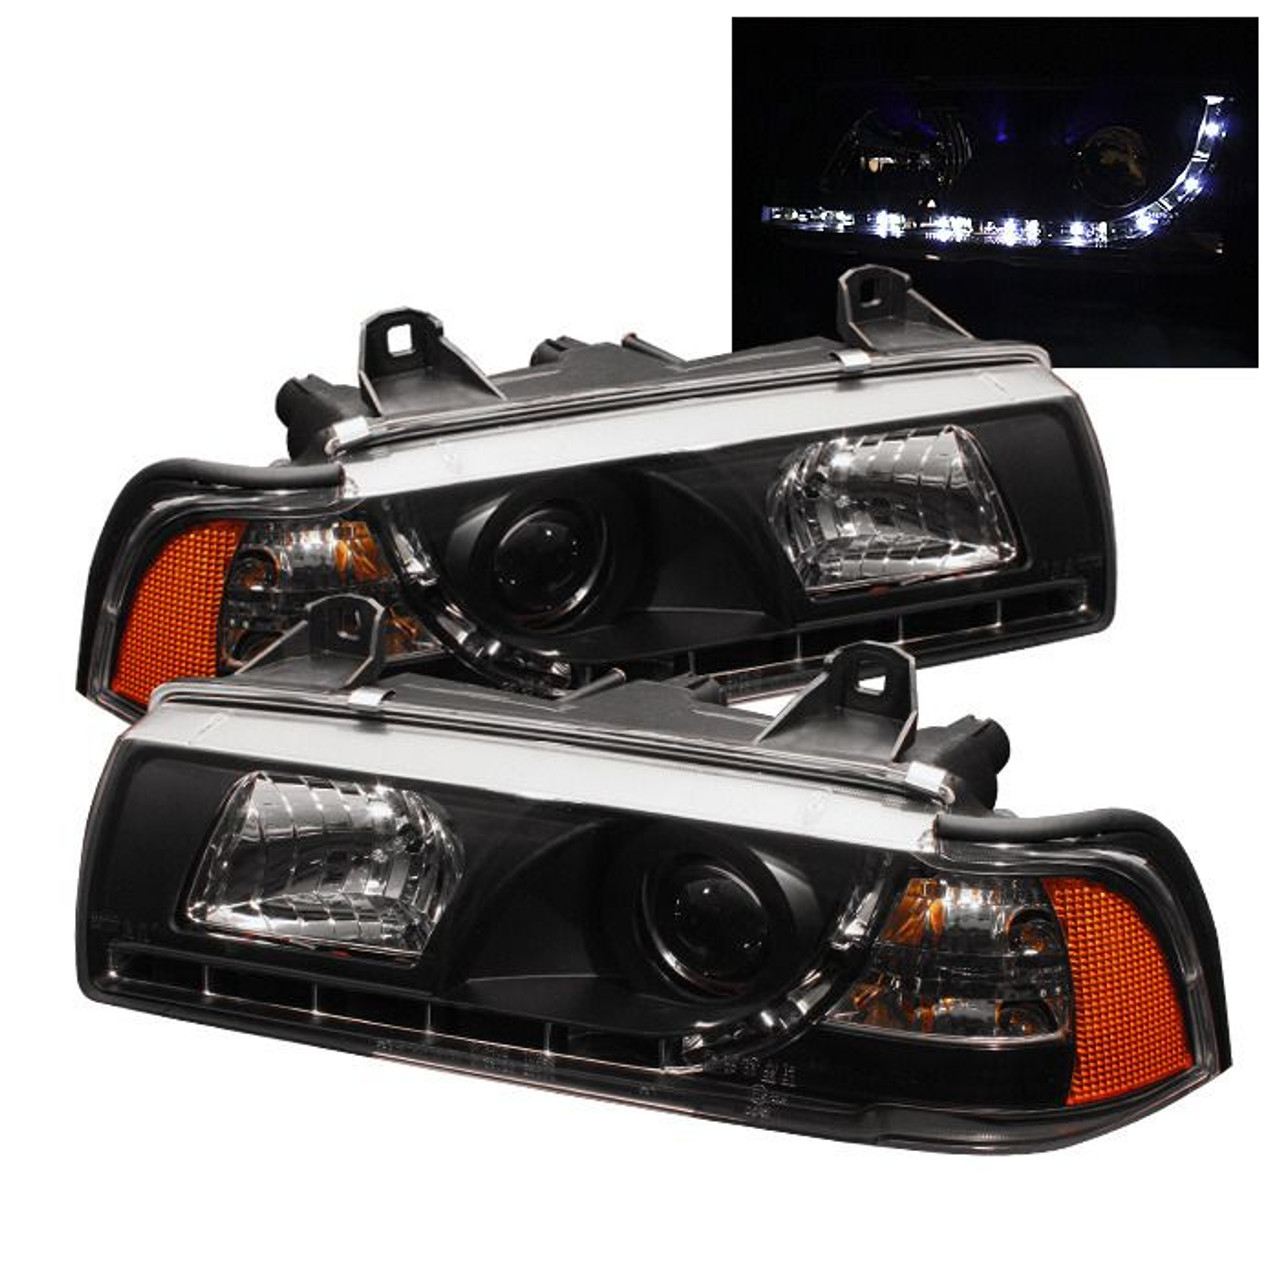 Spyder Black Projector Headlights For 1992 1998 Bmw 318i 325i 328i E36 Sedan